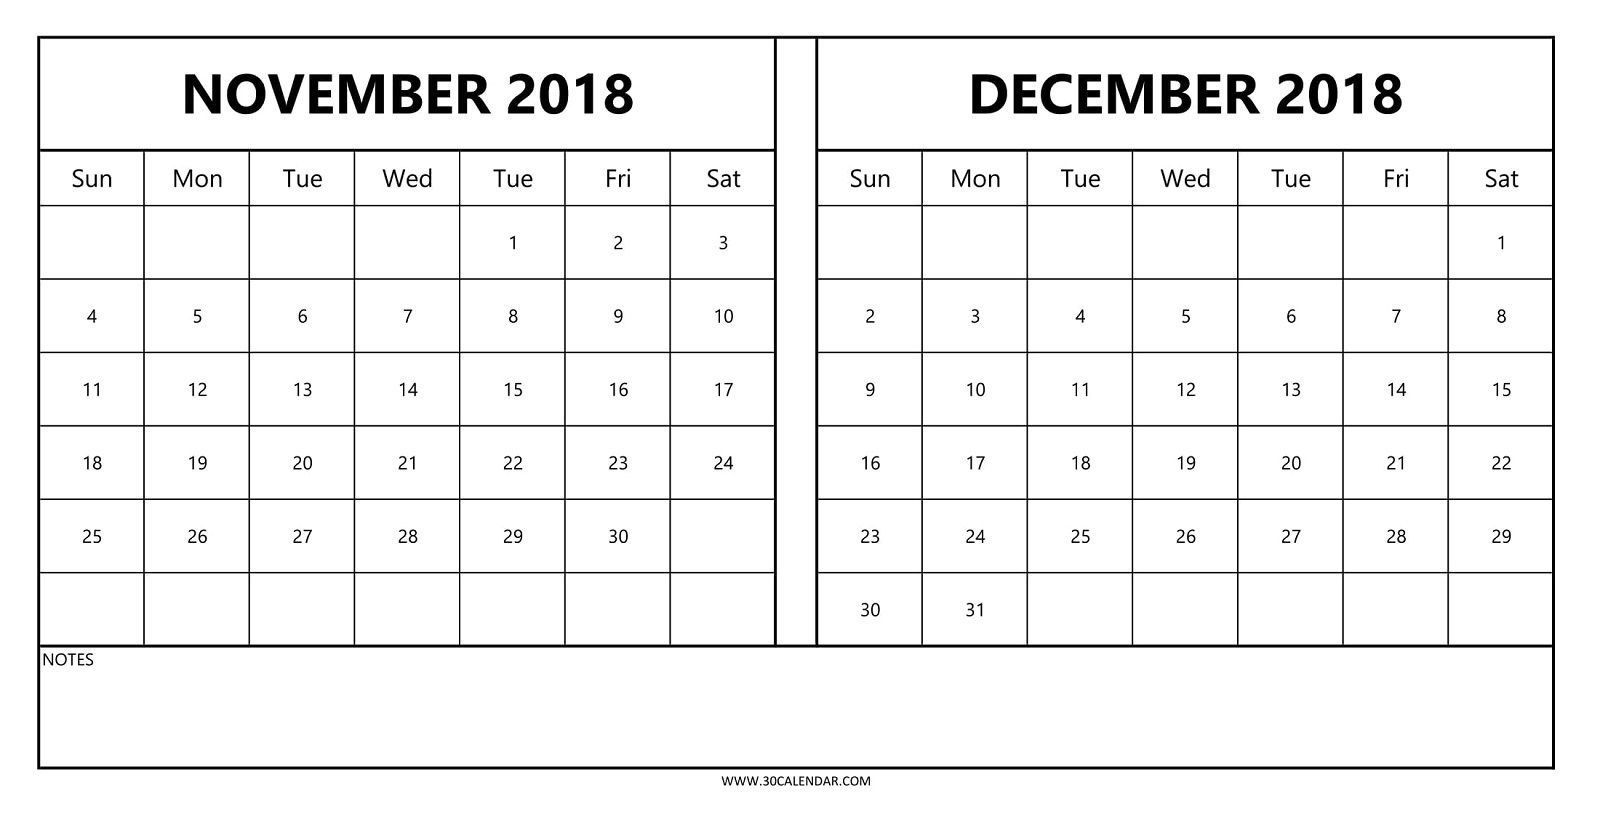 Calendars November And December 2018 | Template Calendar Printable within Blank Calendar For November And December